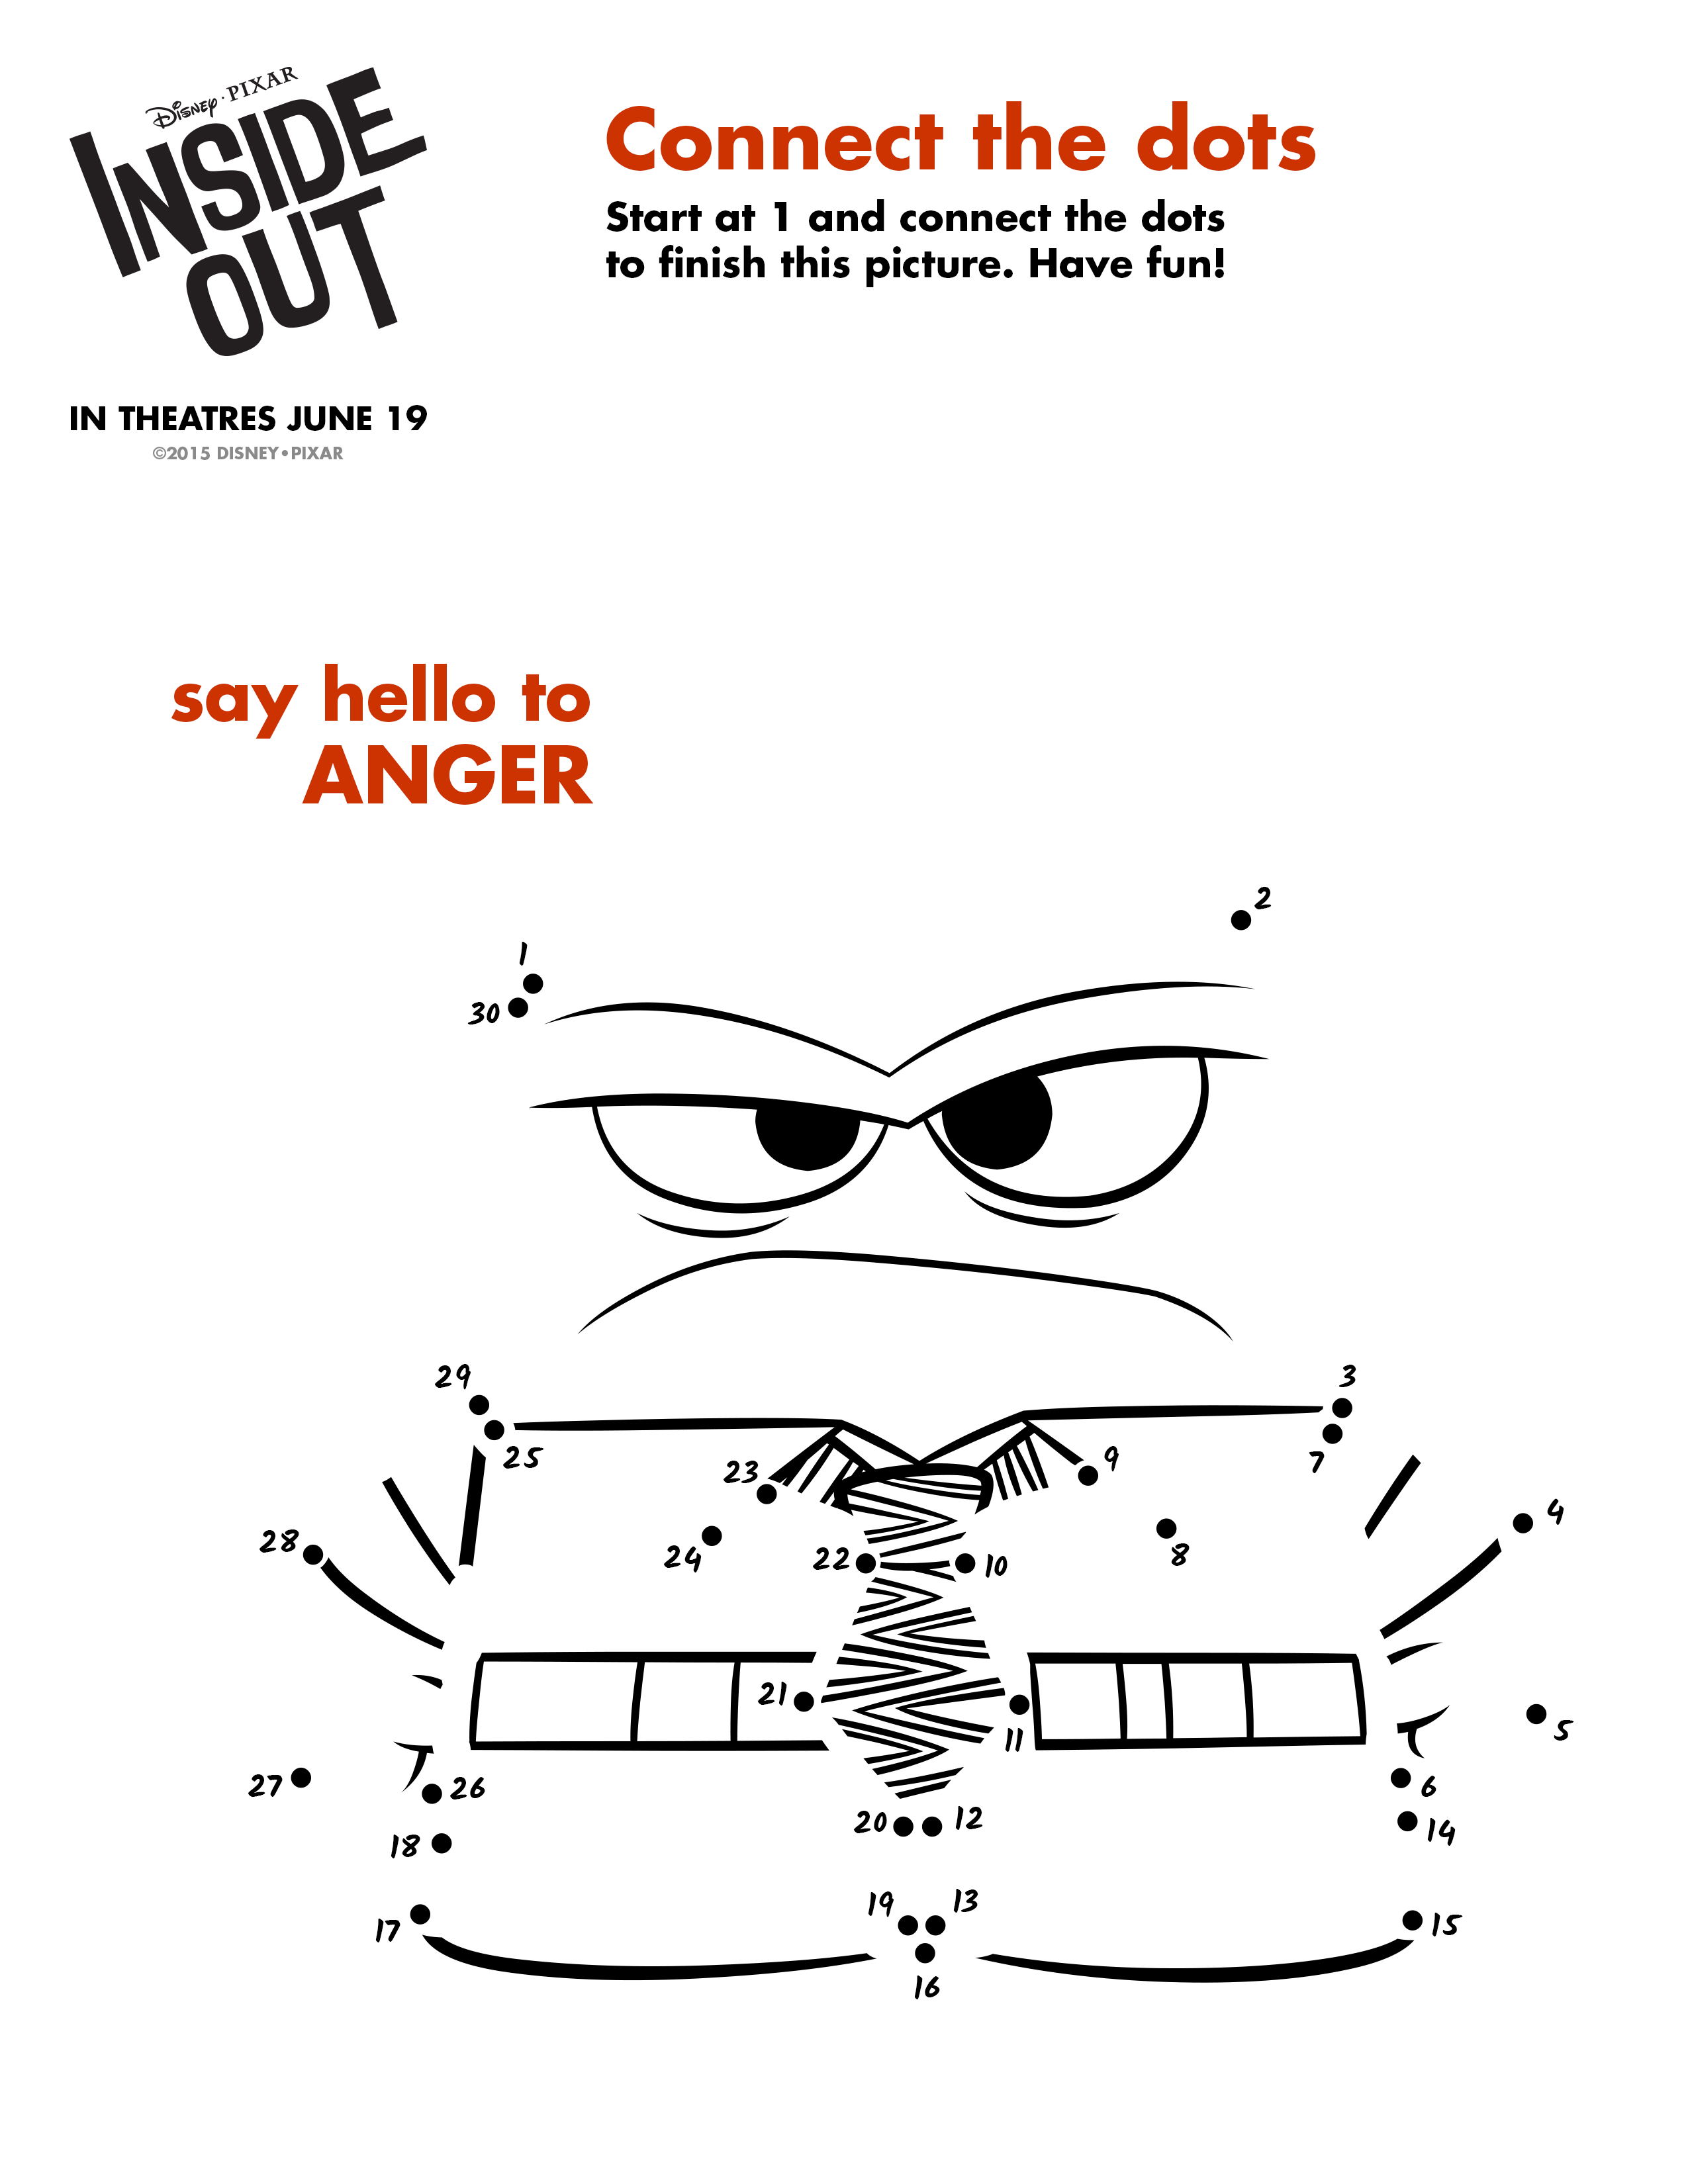 Connect The Dots To Make Anger From Insideout